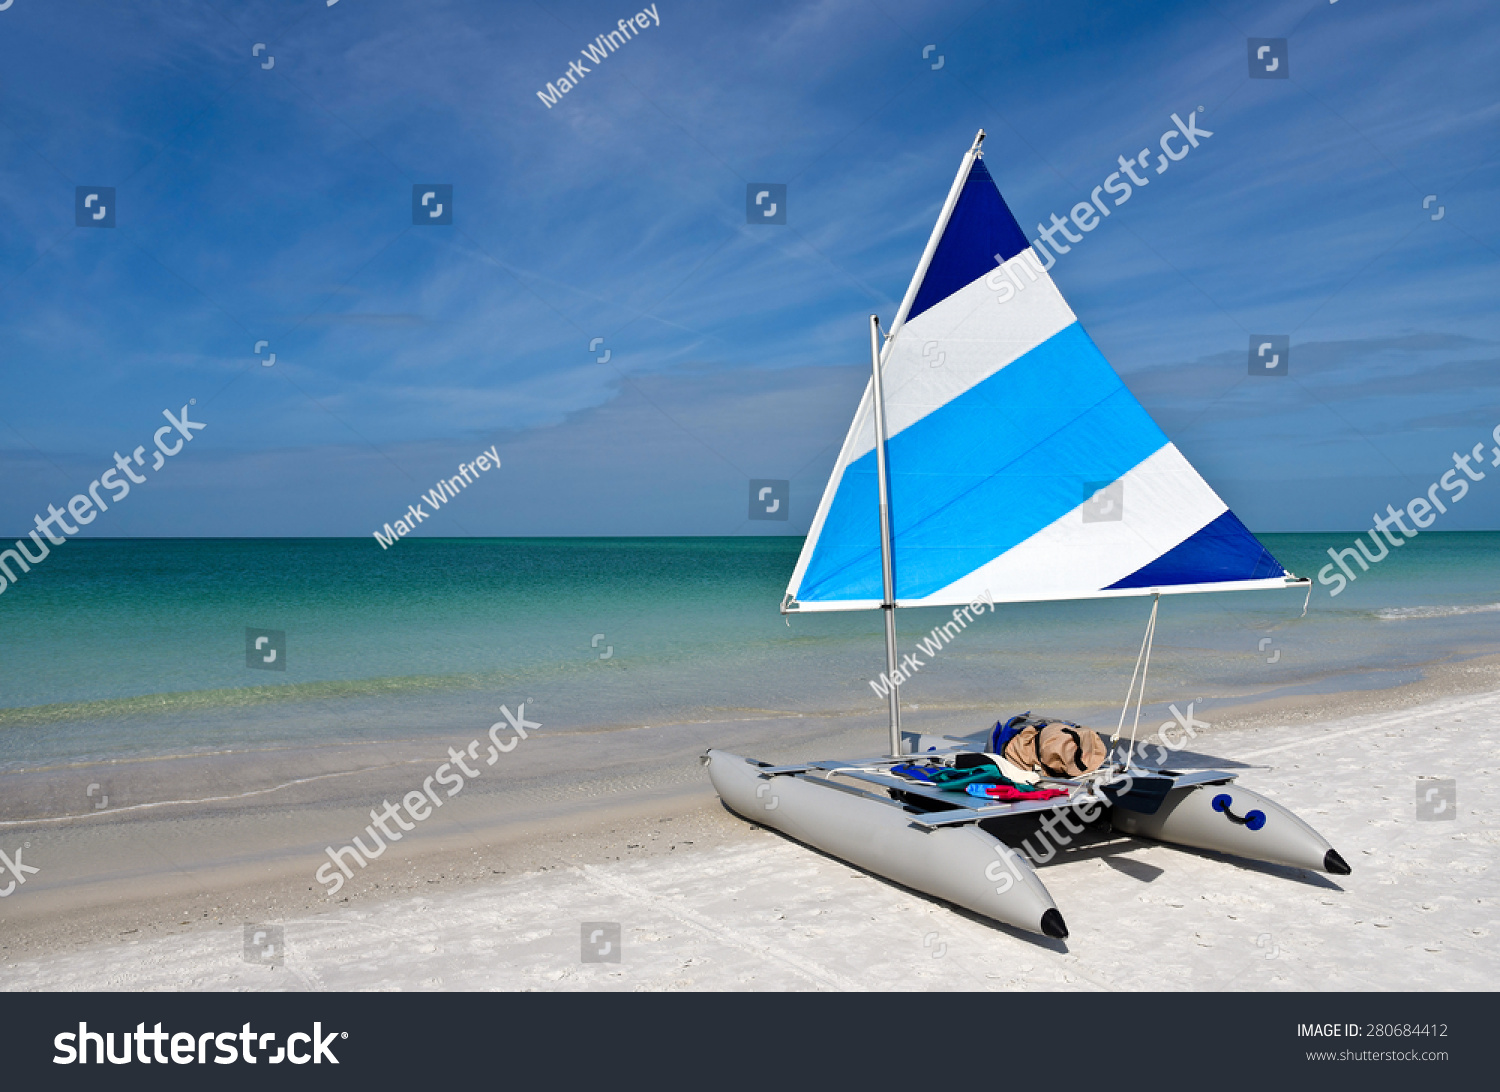 A Sailboat with a Blue and White Sail raised setting on the Beach